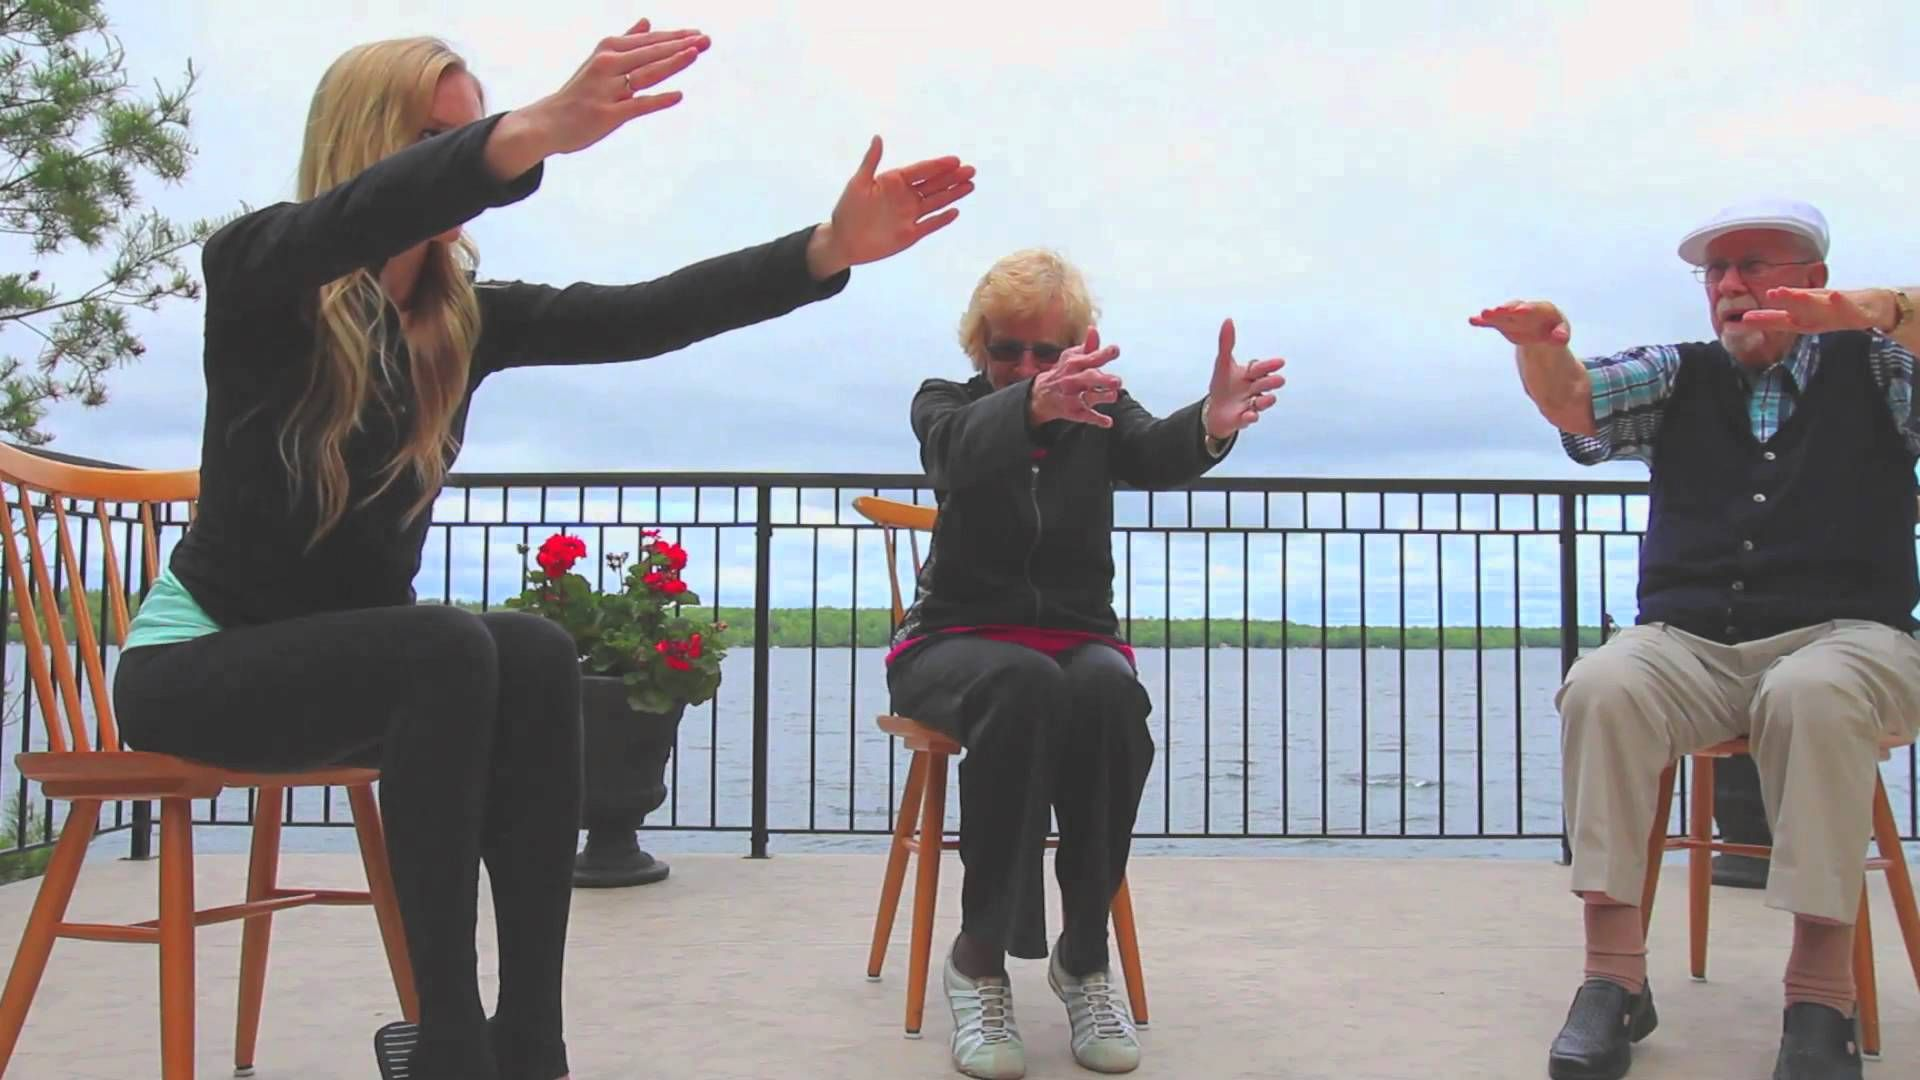 This Video Has Been Created For Those Who Are New To Yoga The Older Adults In This Video Are Over 80 Years Of Age Yoga For Seniors Chair Yoga Senior Fitness